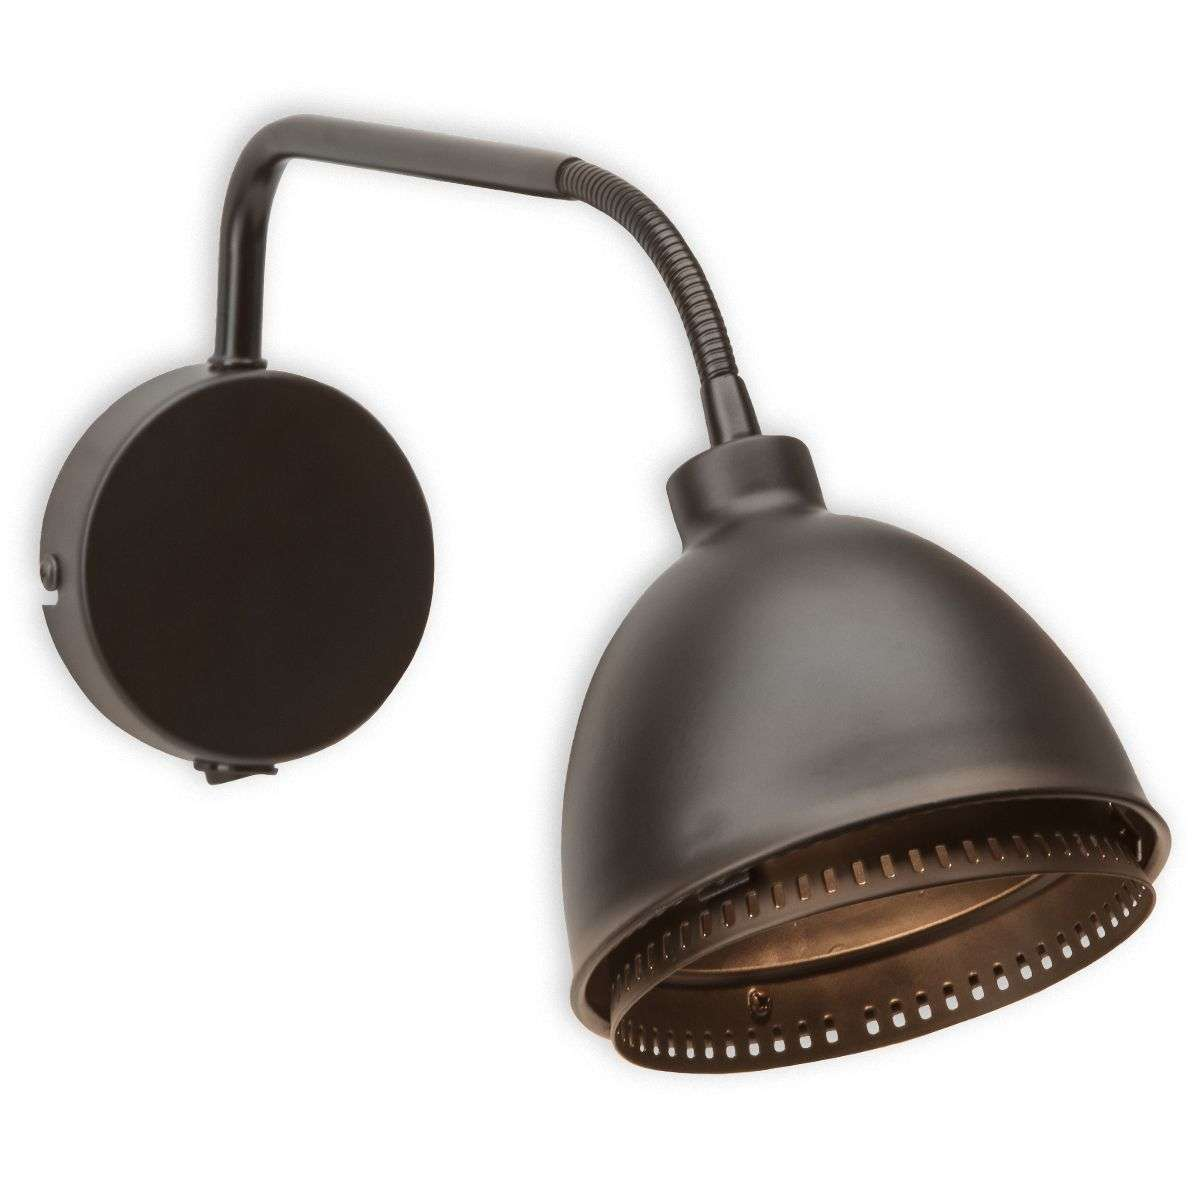 Skirt black wall light with an industrial design-1509065-31